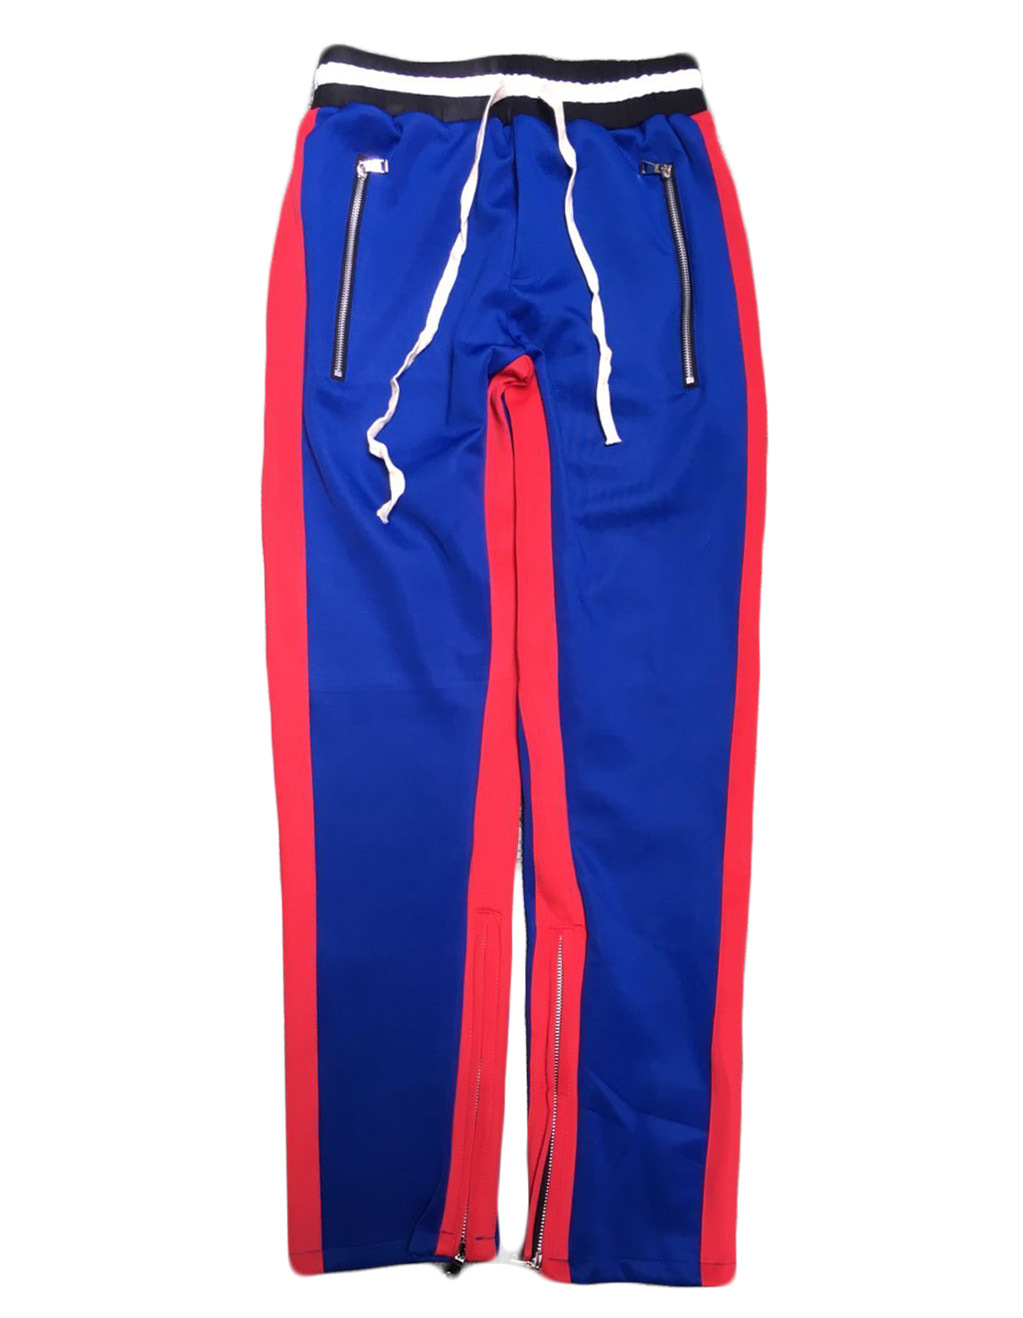 H.A. Sueno 2017 new men track pants hip hop mens pants with zippers popular panelled soft trousers high street wear